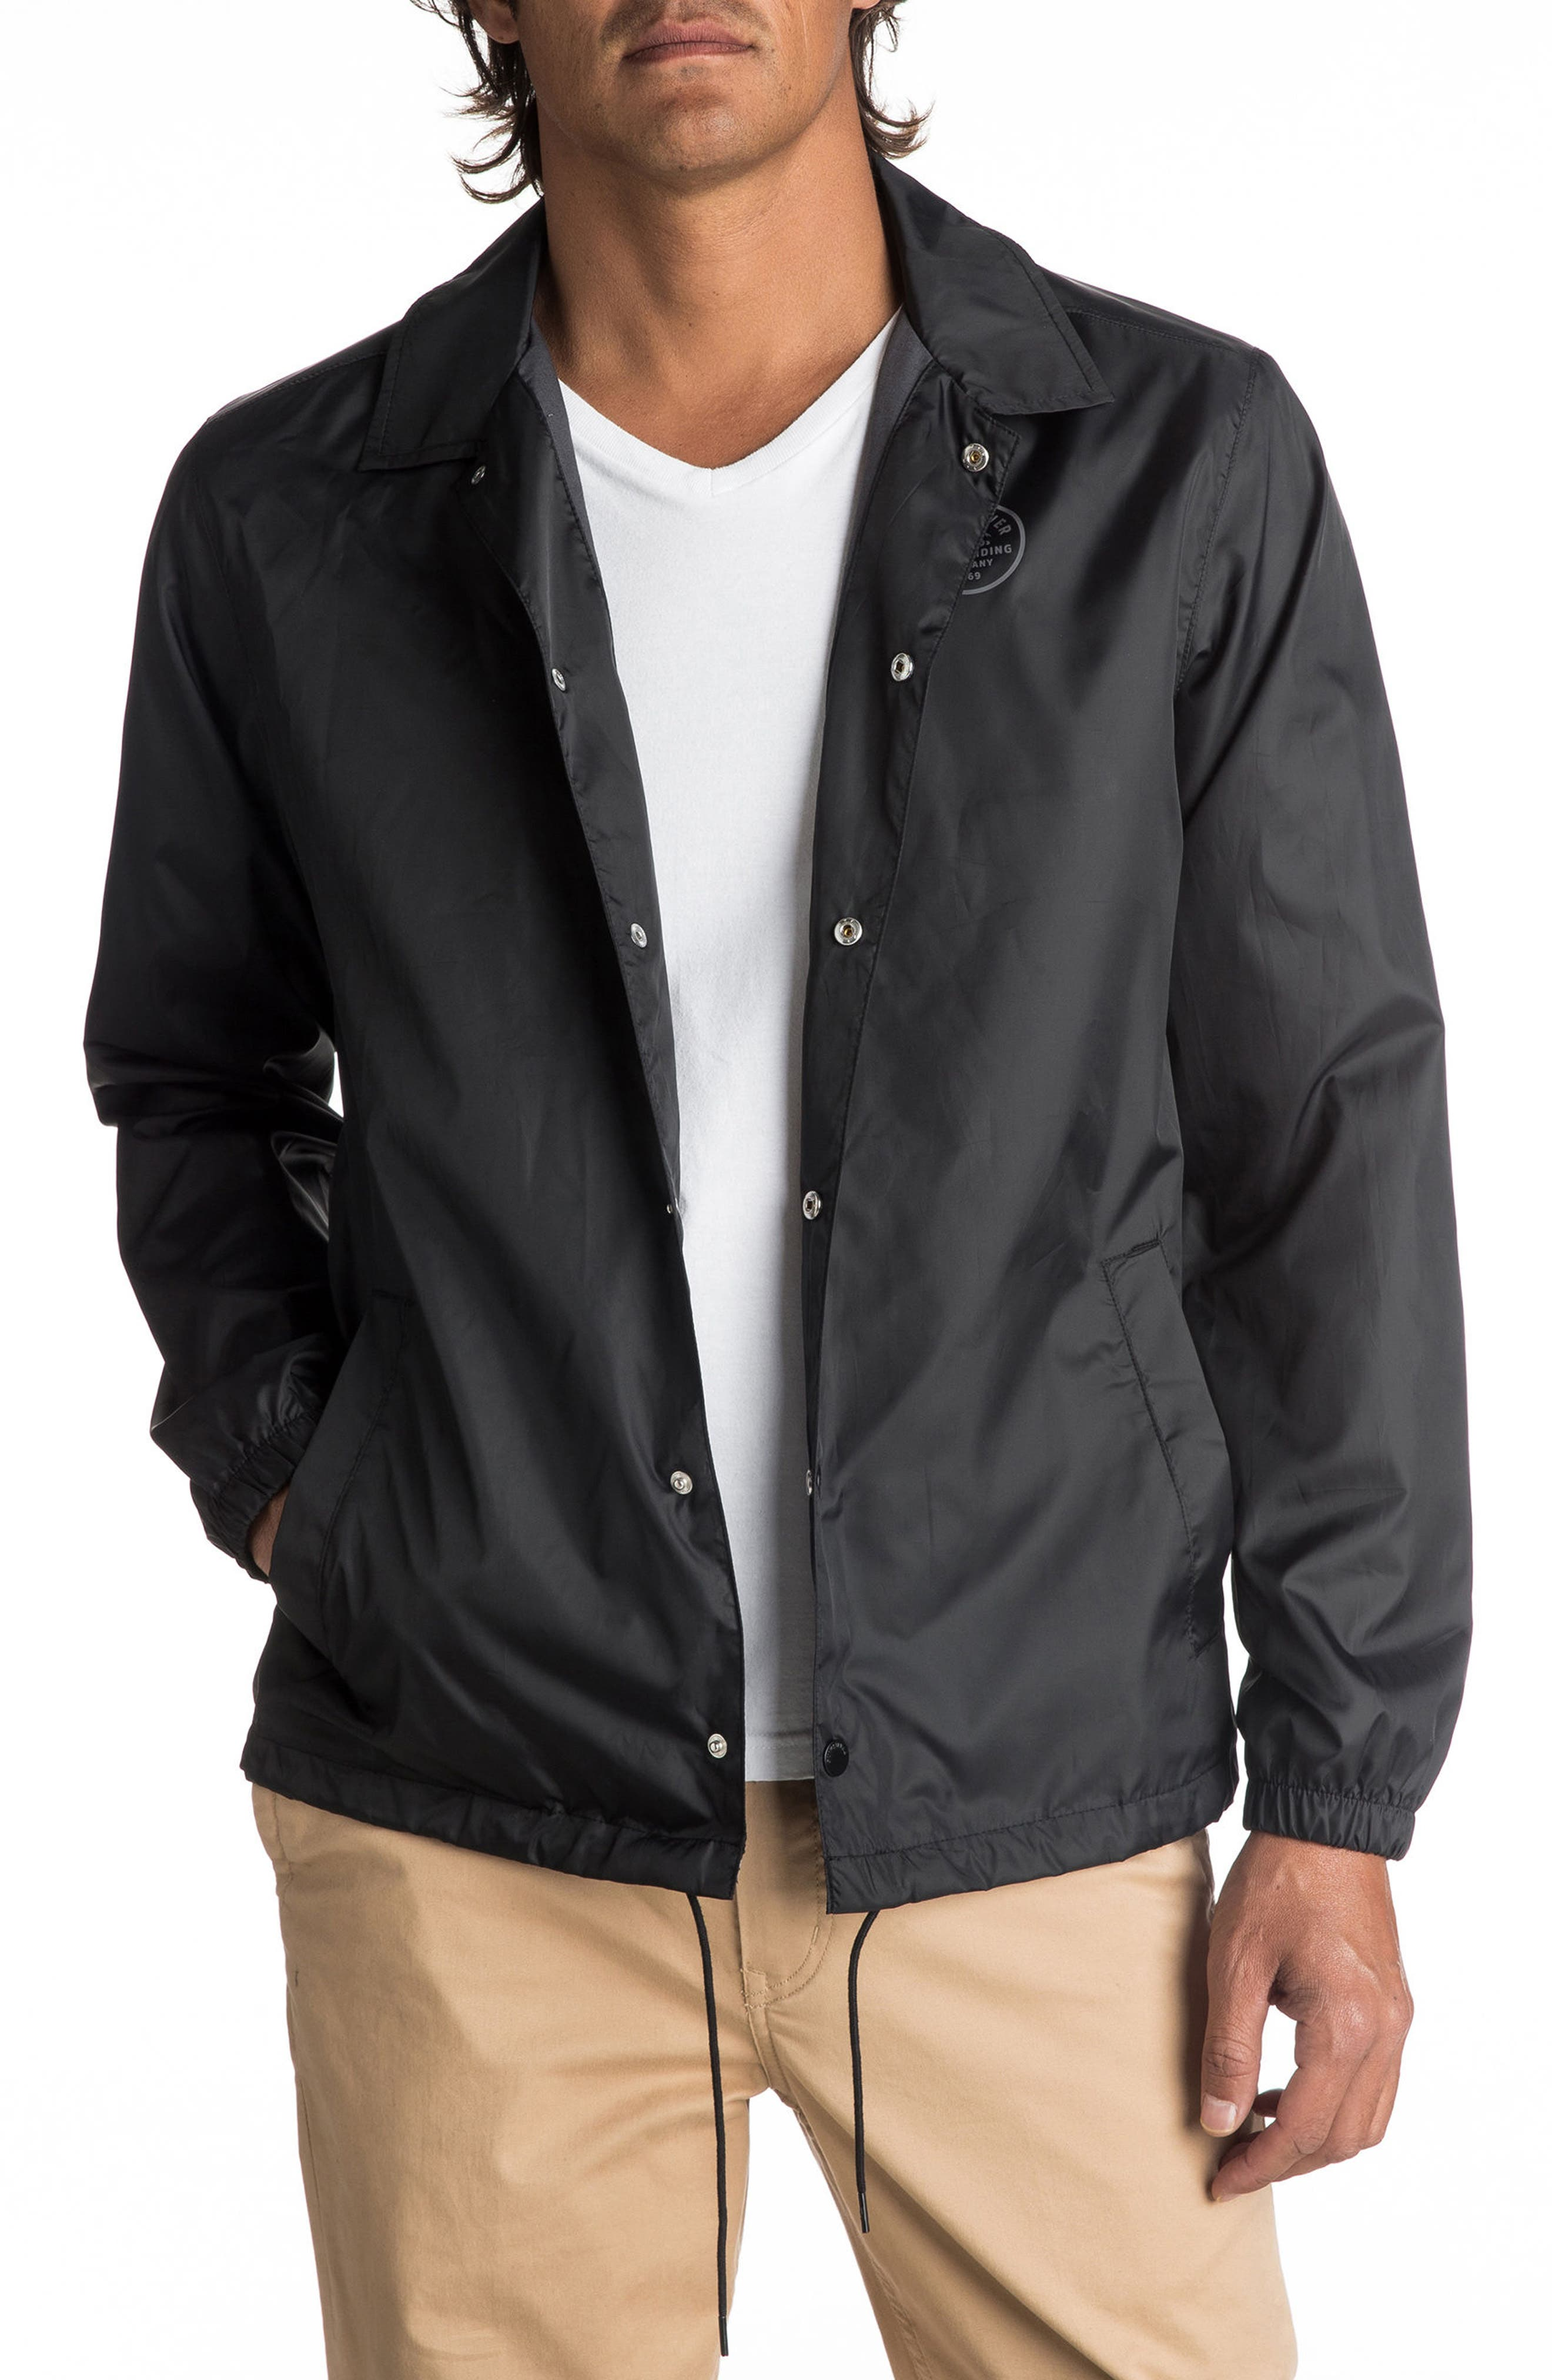 Alternate Image 1 Selected - Quiksilver Surf Coach's Jacket